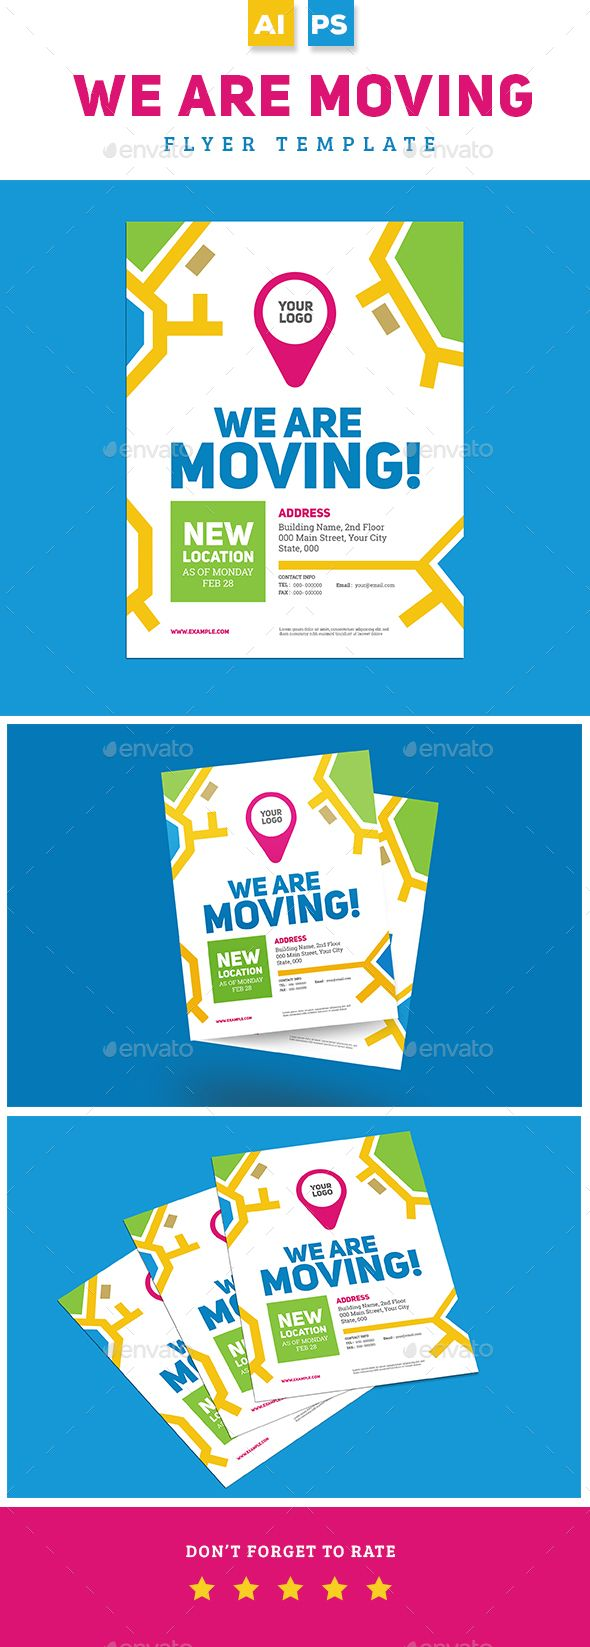 we are moving flyer template psd ai illustrator flyer templates